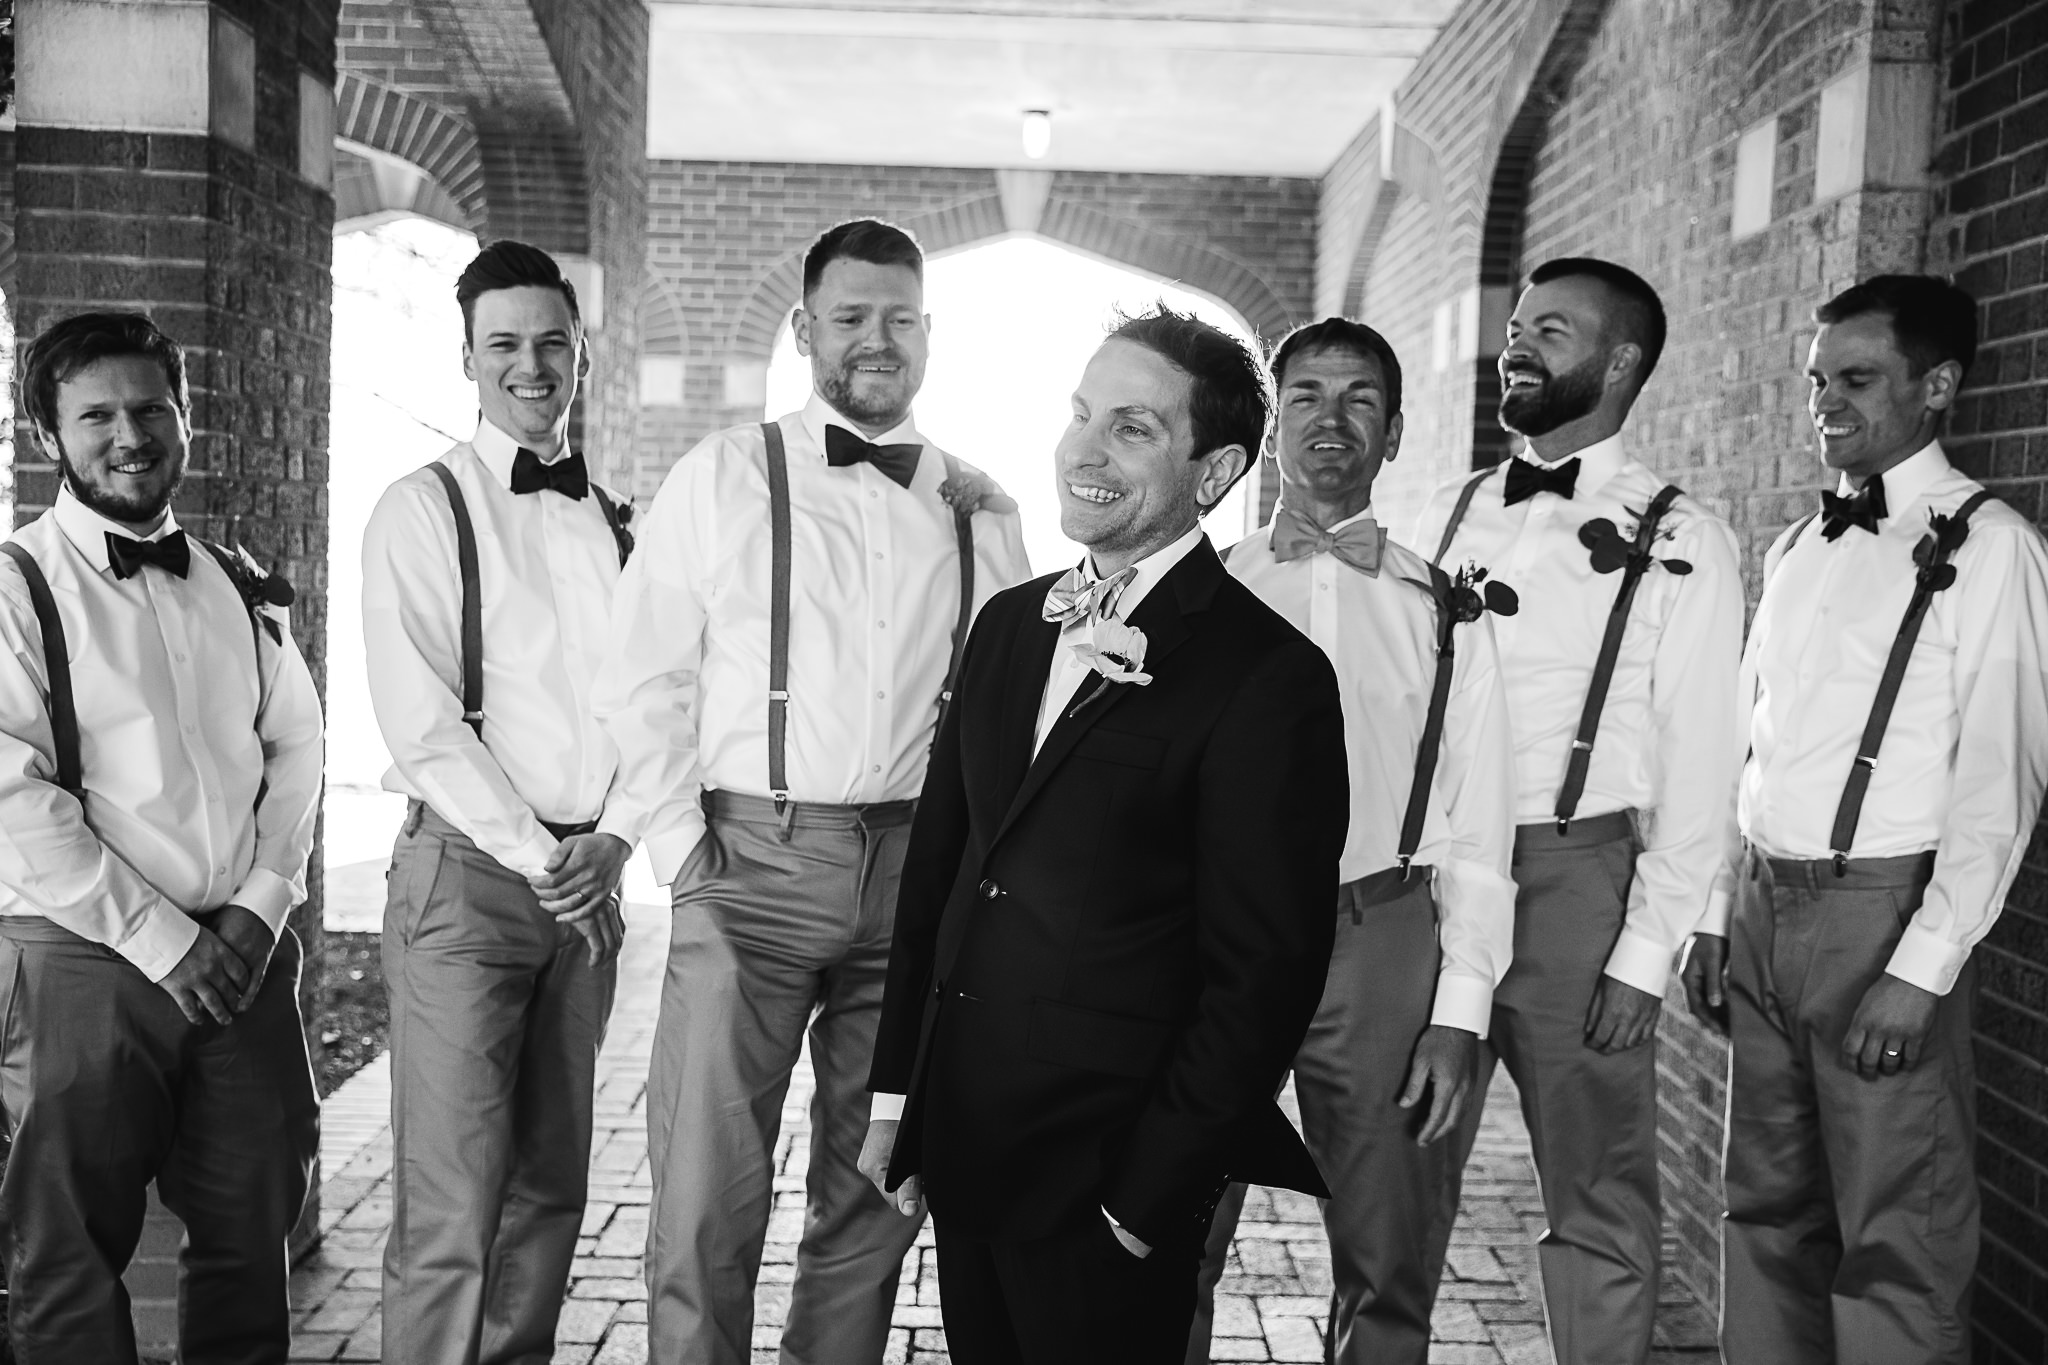 chattanooga-wedding-photographers-thewarmtharoundyou-waterhouse-pavilion-patten-chapel-wedding-sam-dusty (18 of 99).jpg